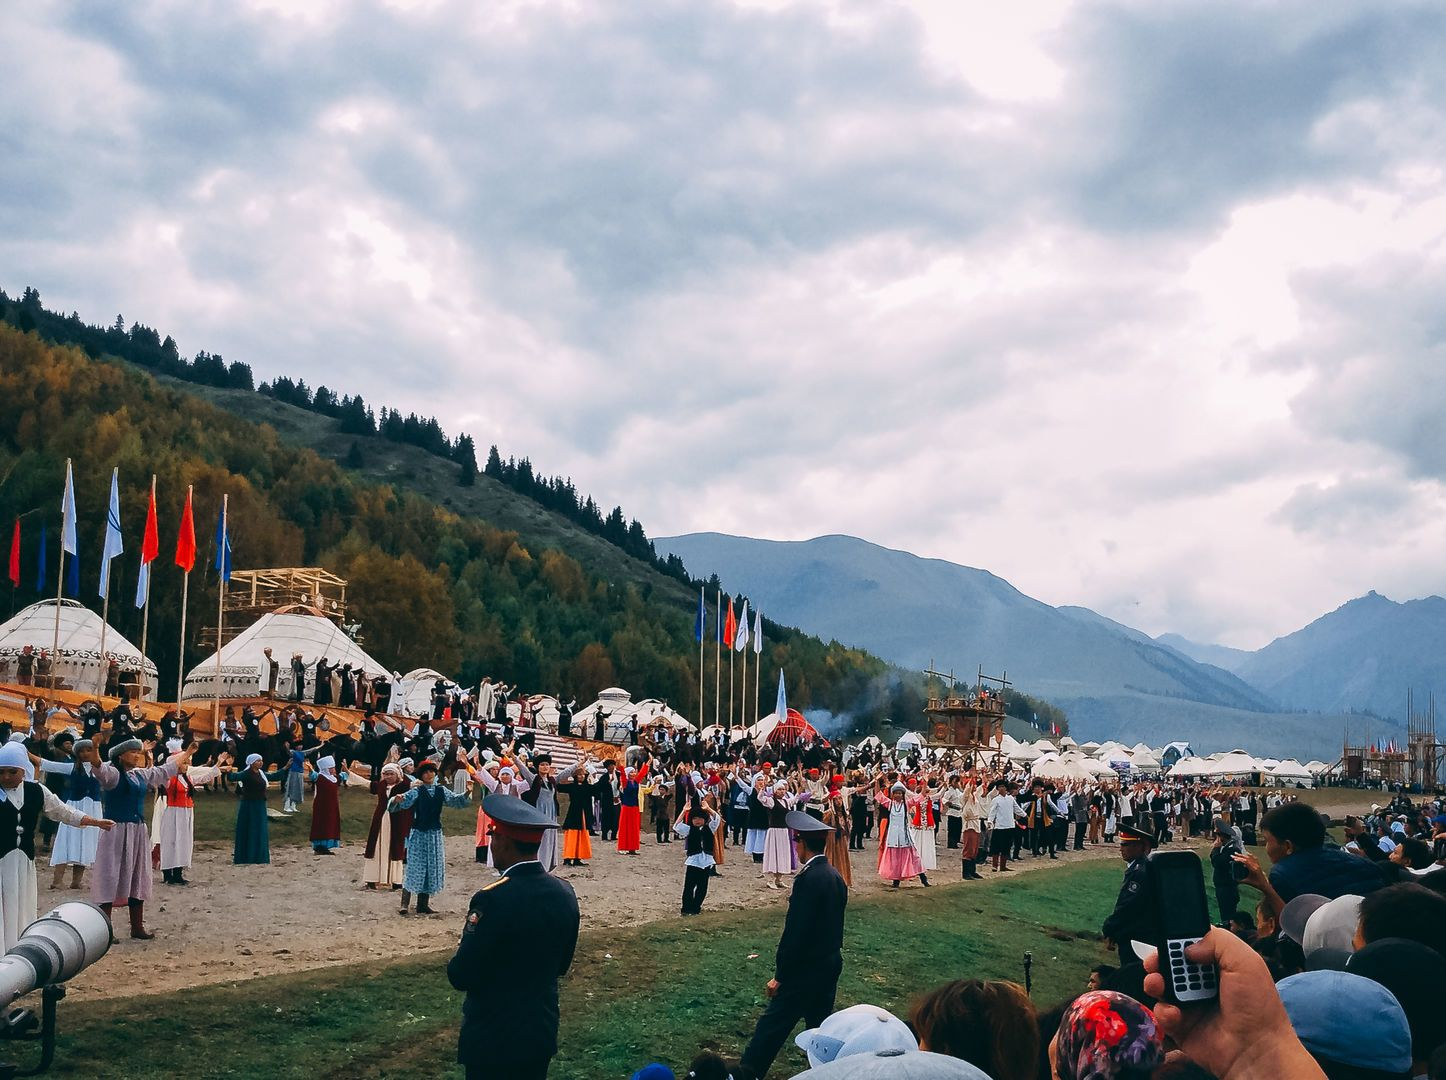 World nomad games central asia